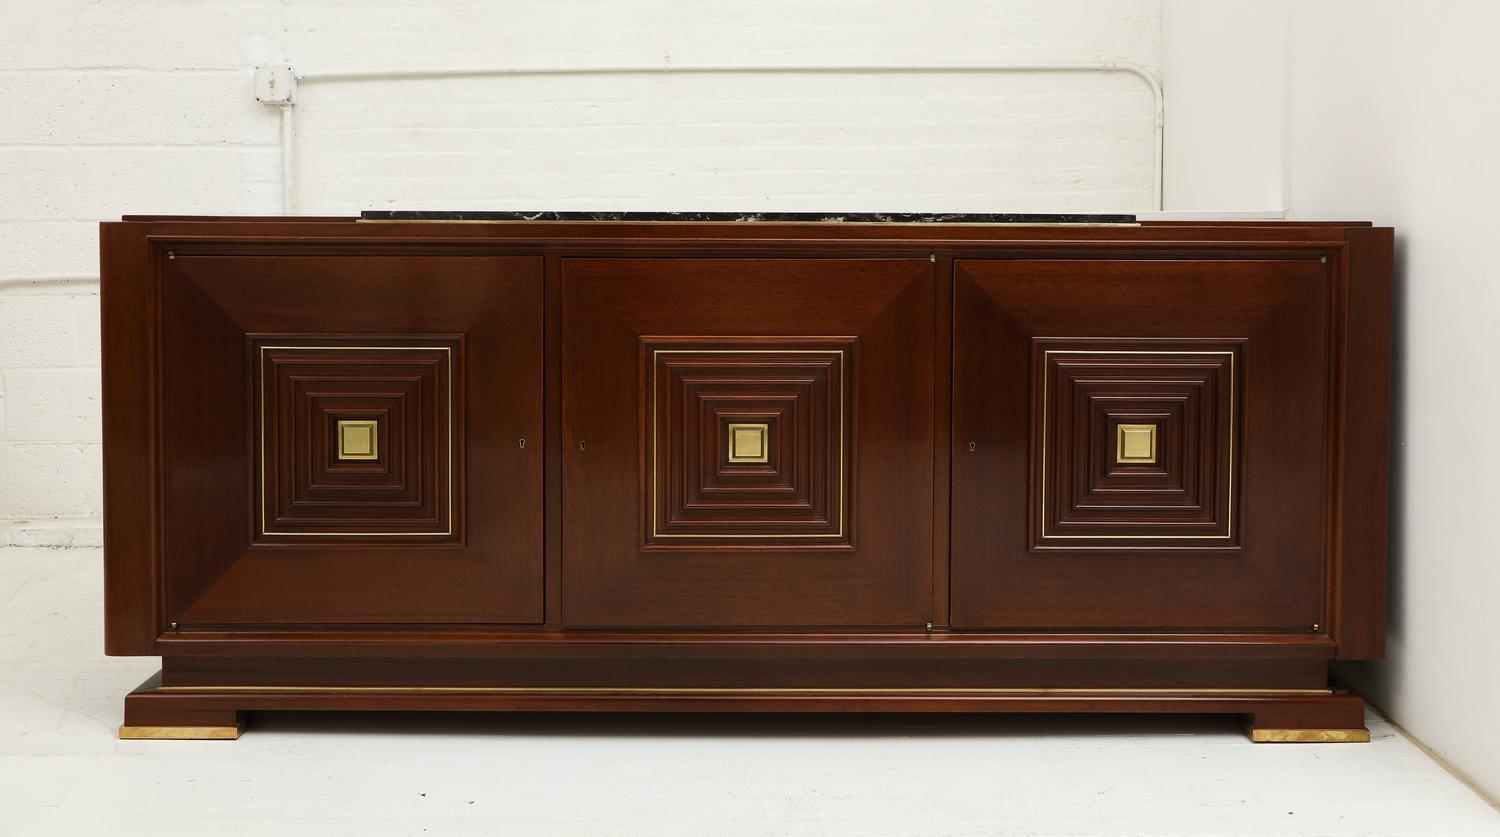 Deco mahogany french buffet sideboard with bronze